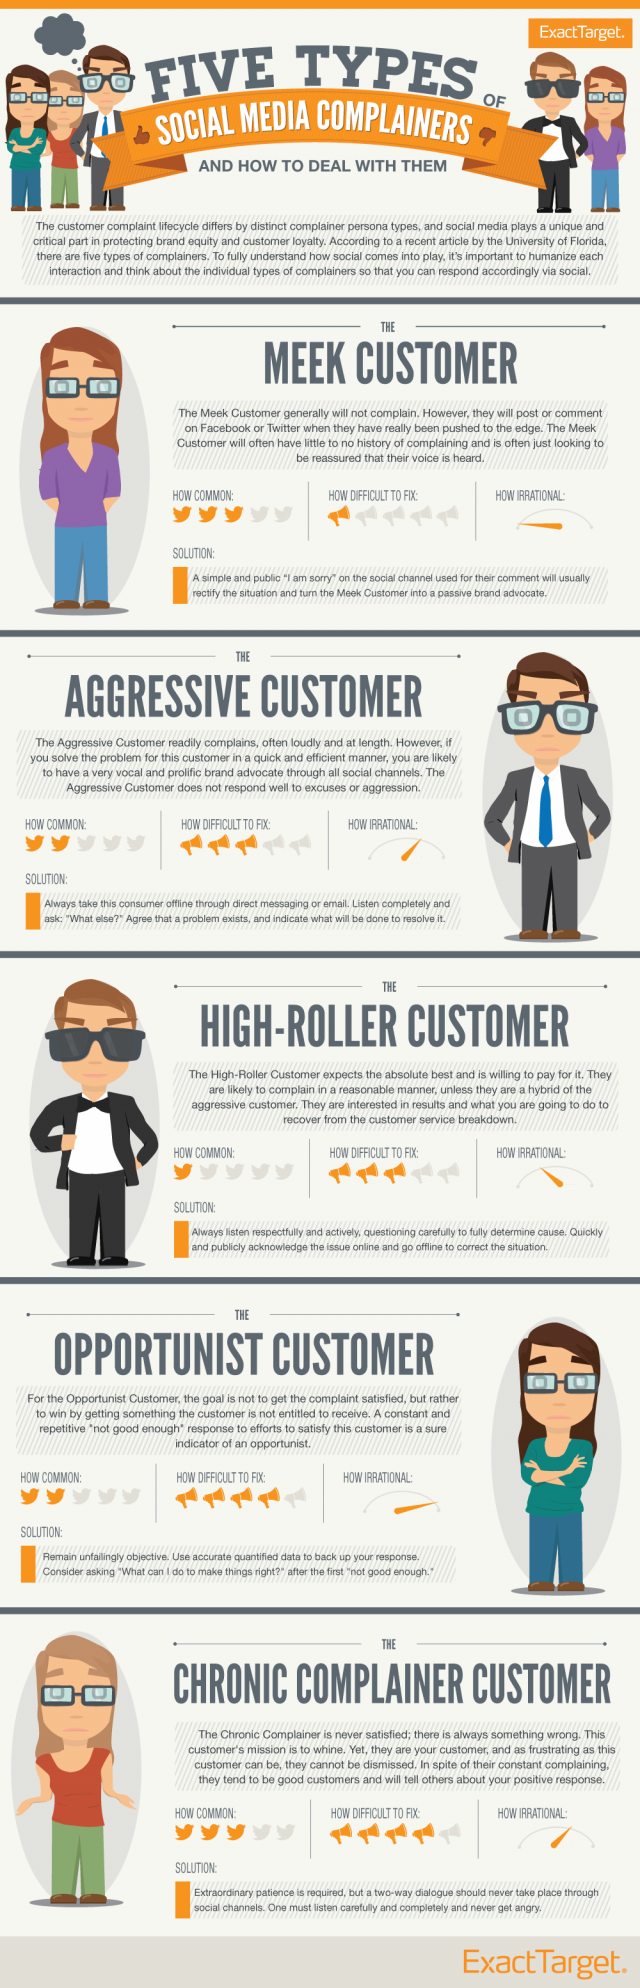 Social Media Complainers-Infographic